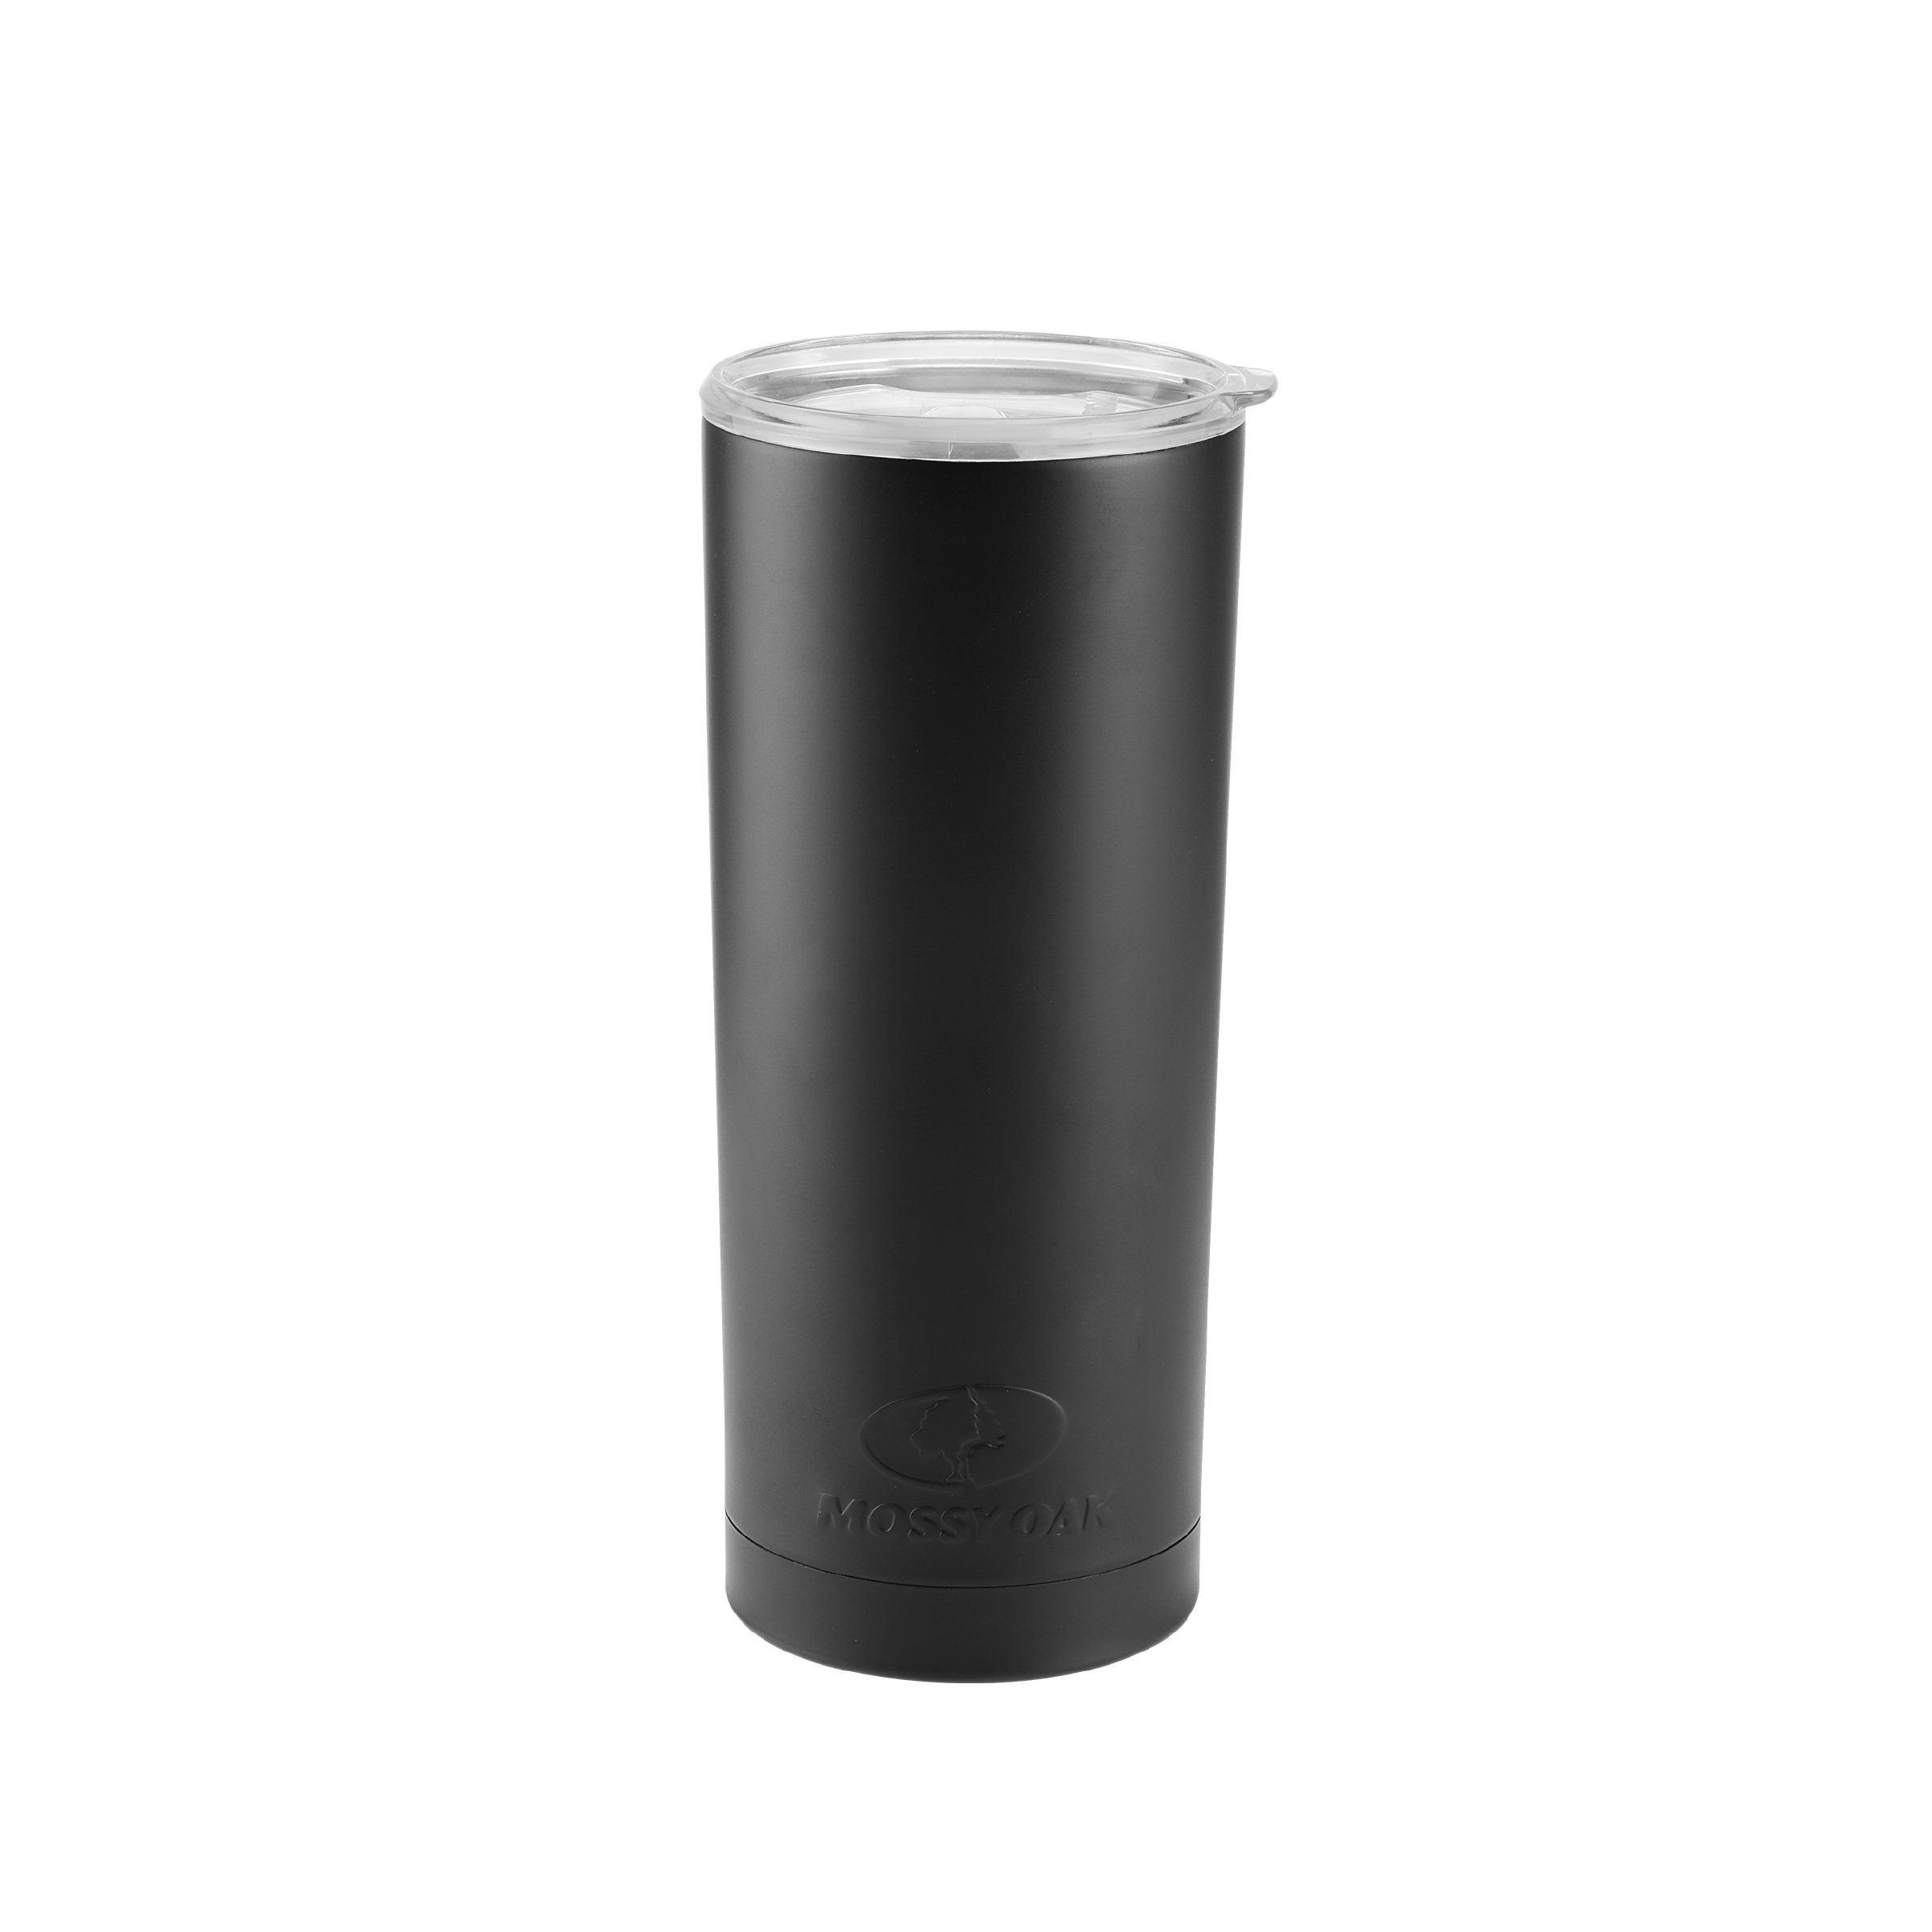 Mossy Oak 5189567 Double Wall Insulated Stainless Steel Tumbler, 20-Ounce, Black